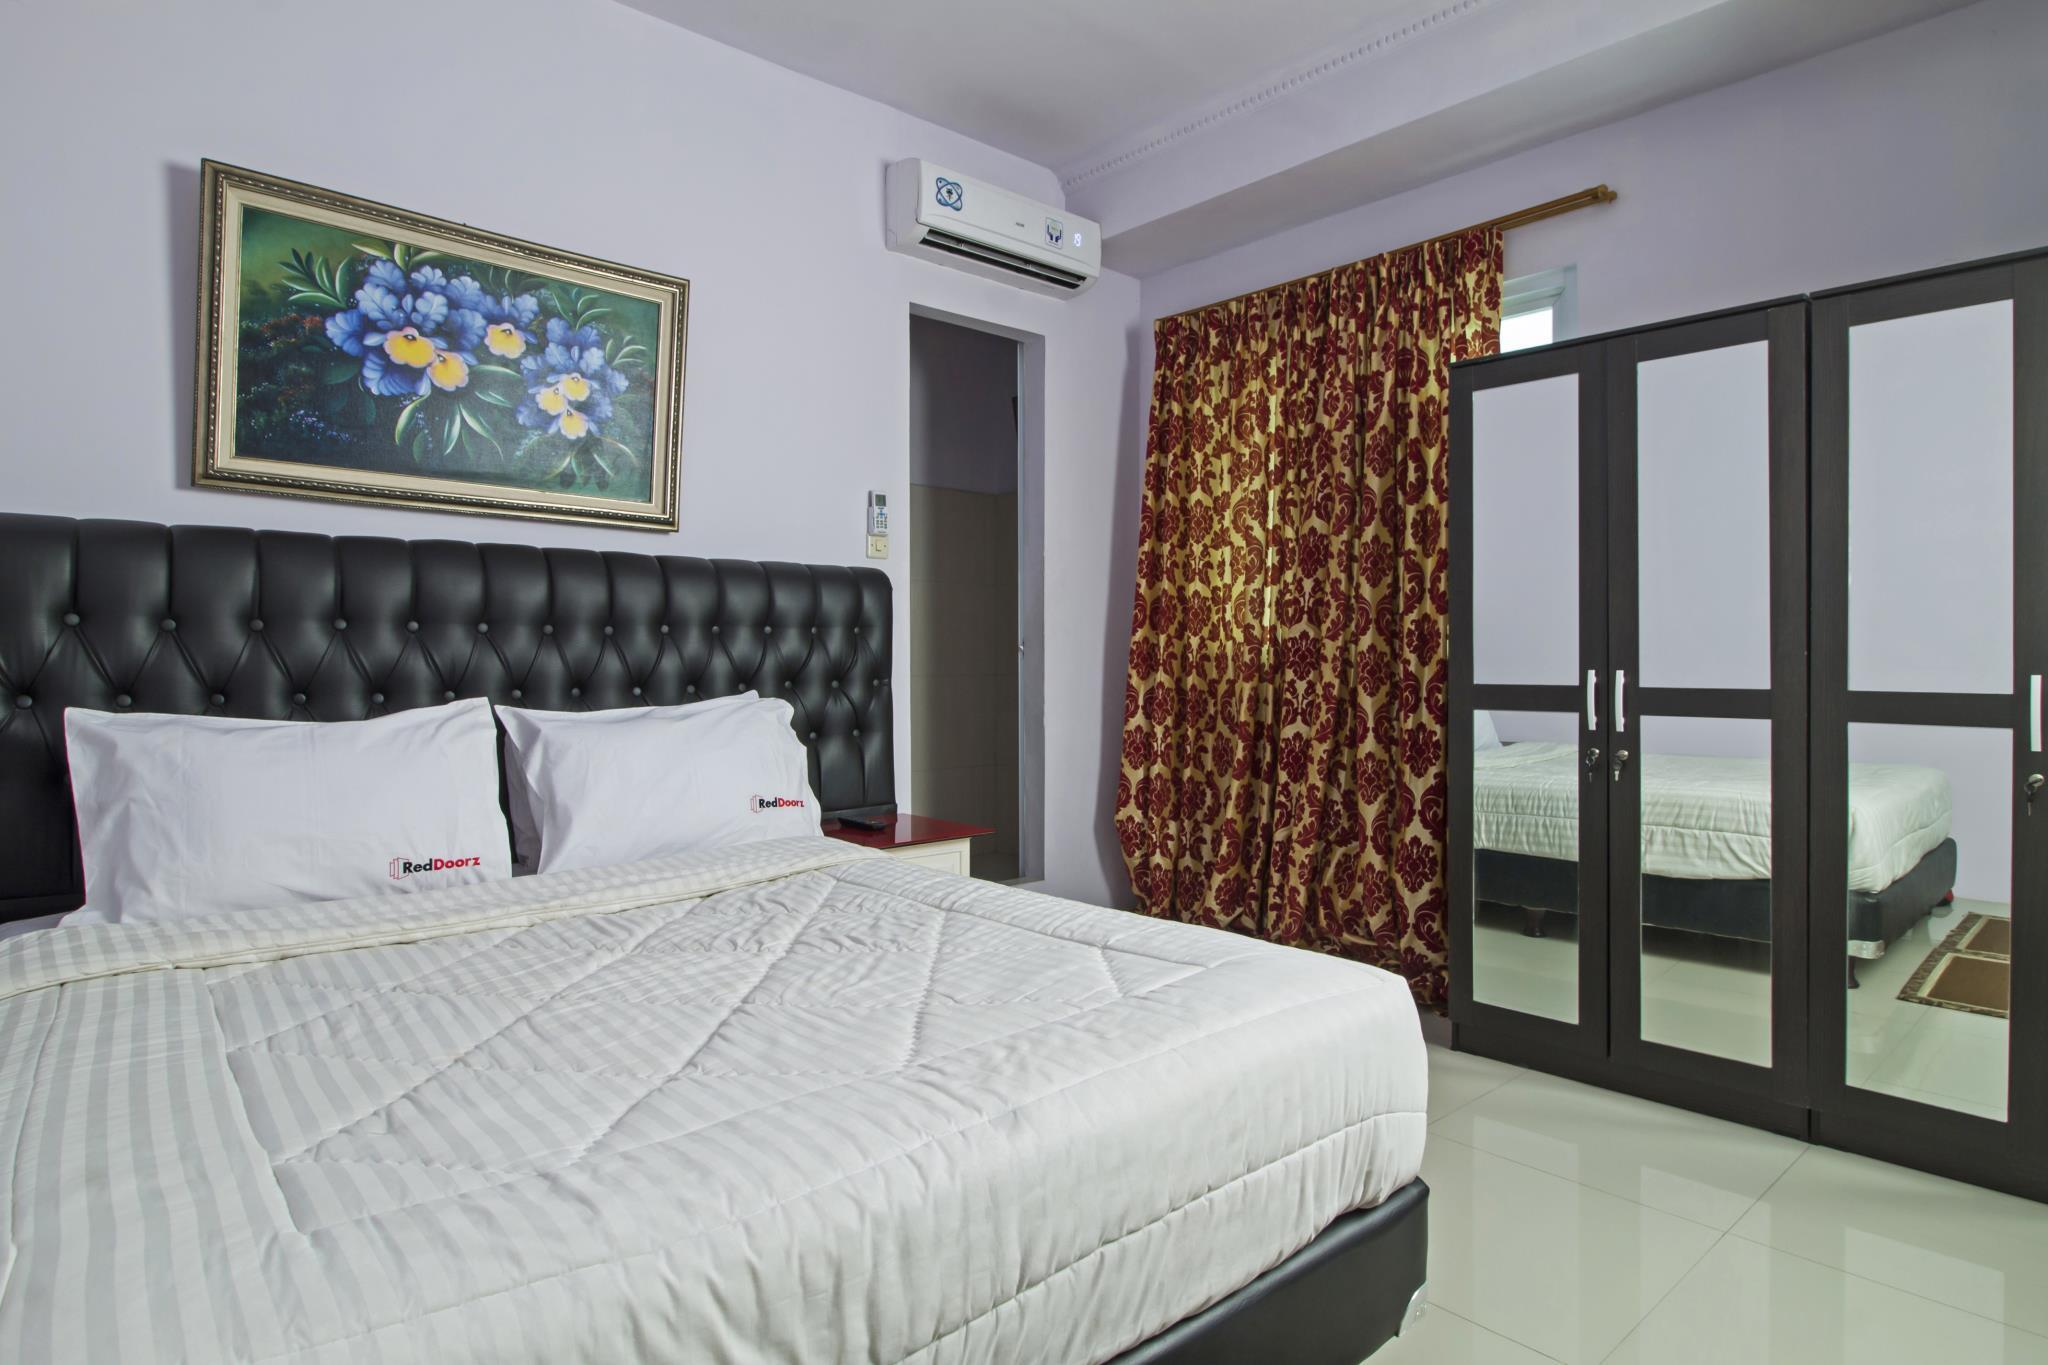 RedPalm1 Guest House